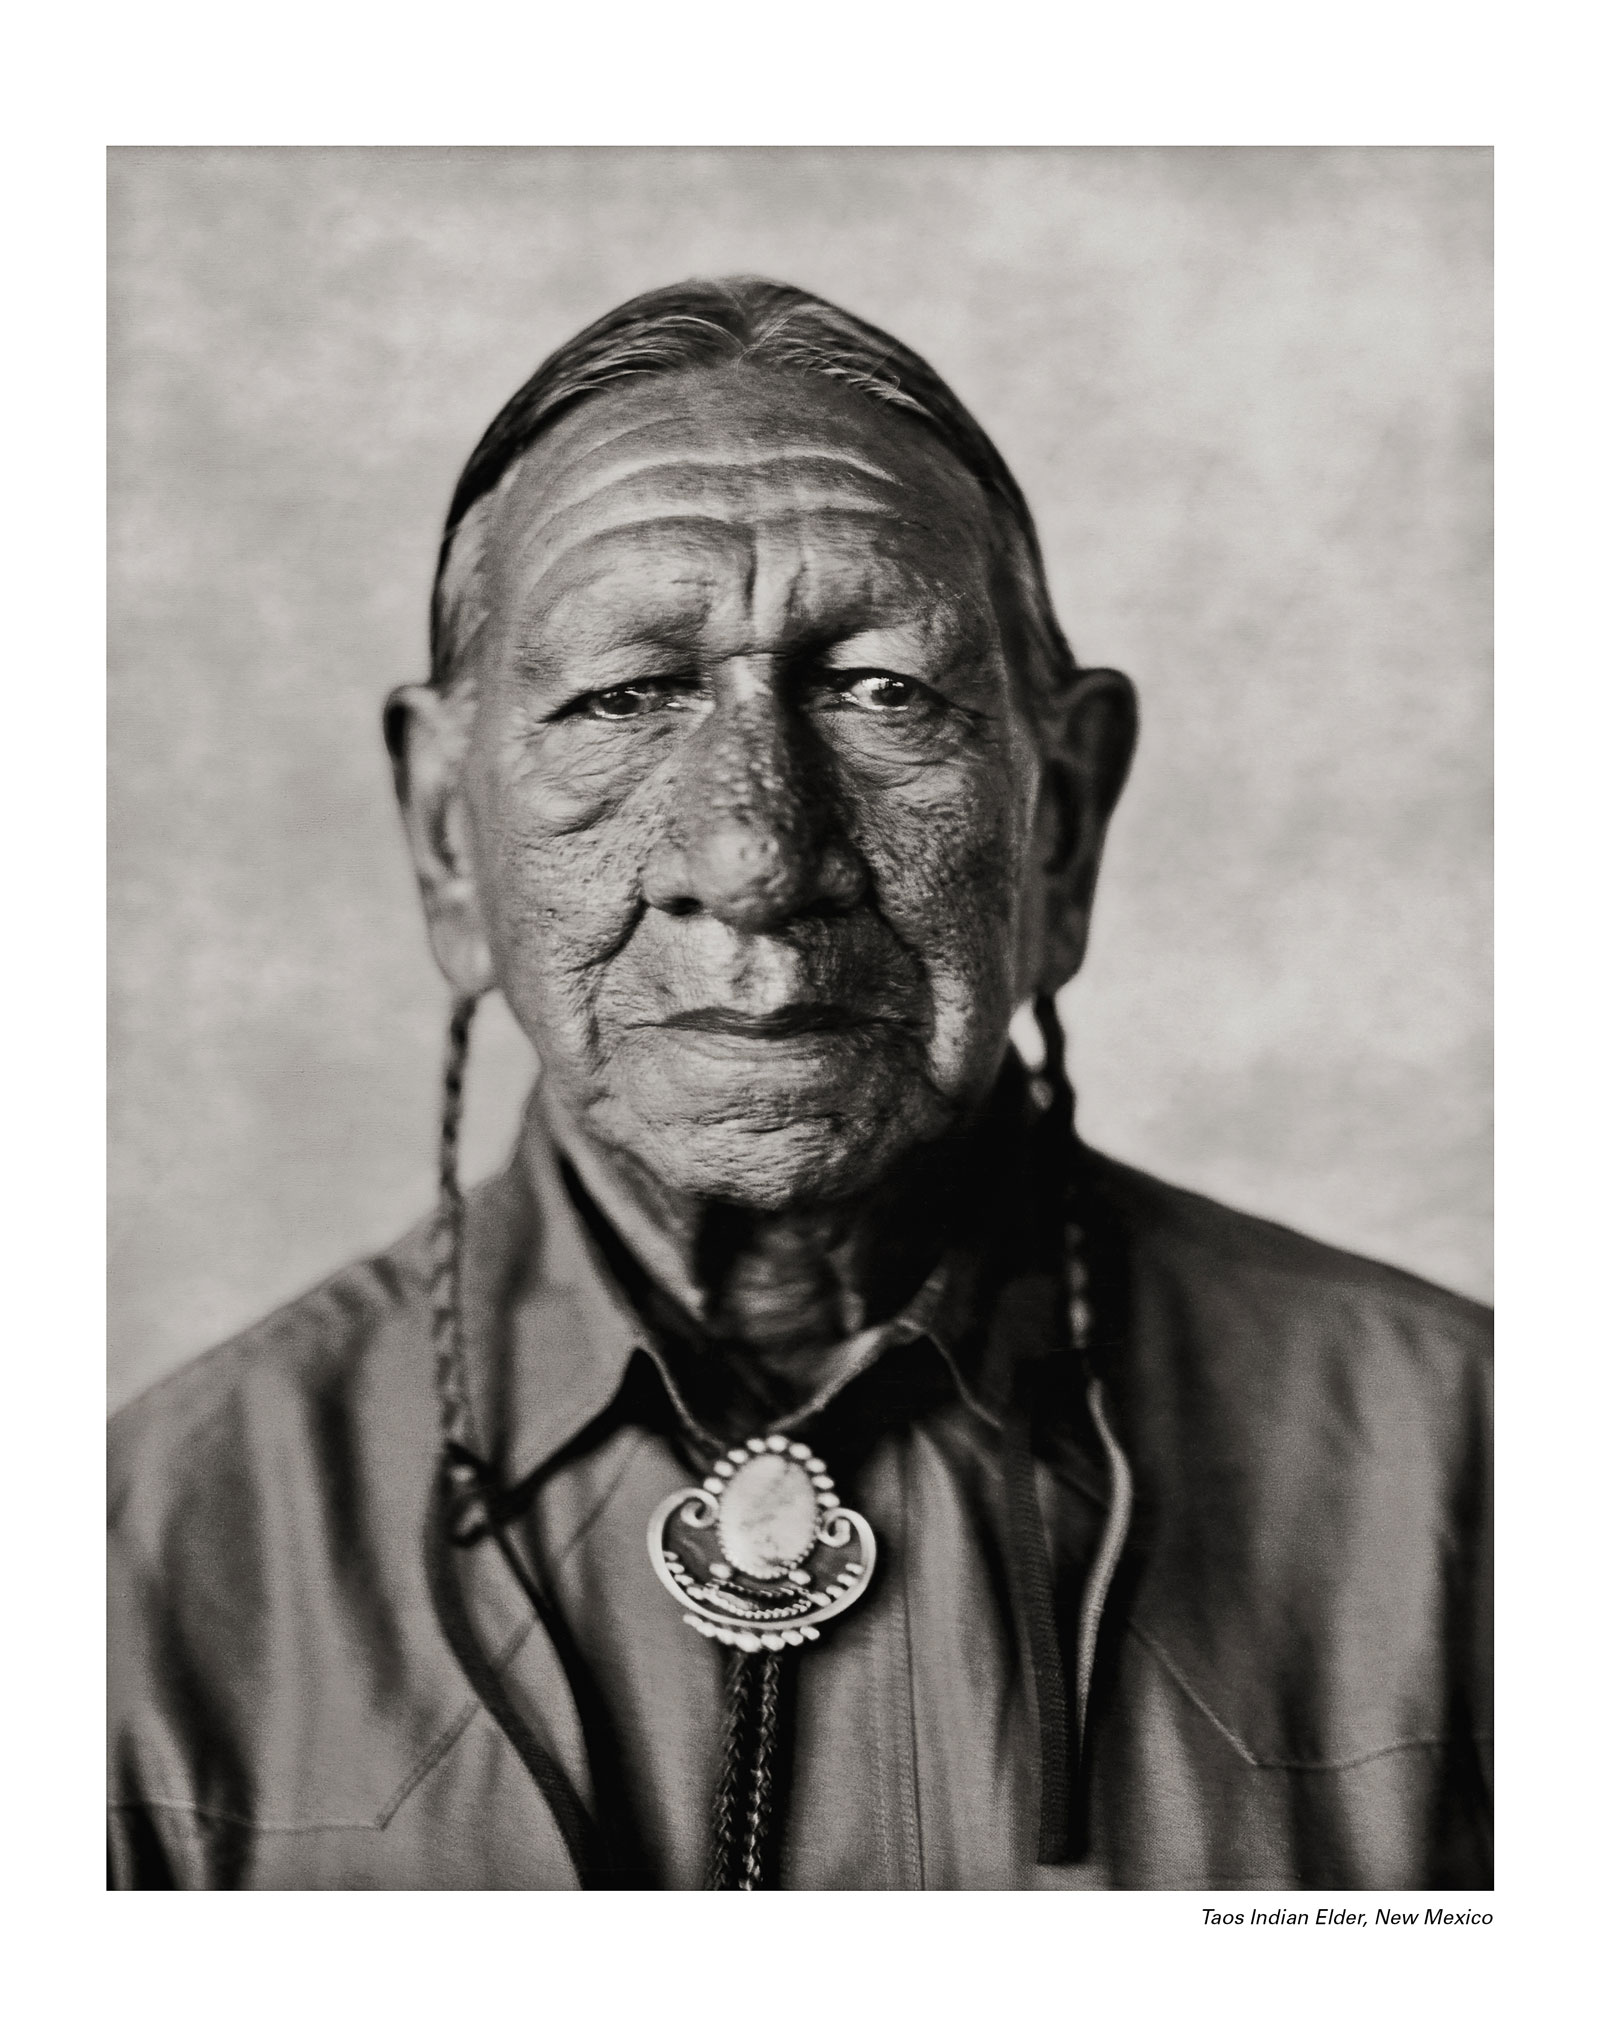 nf_Taos_Indian_Elder_New_Mexico.jpg